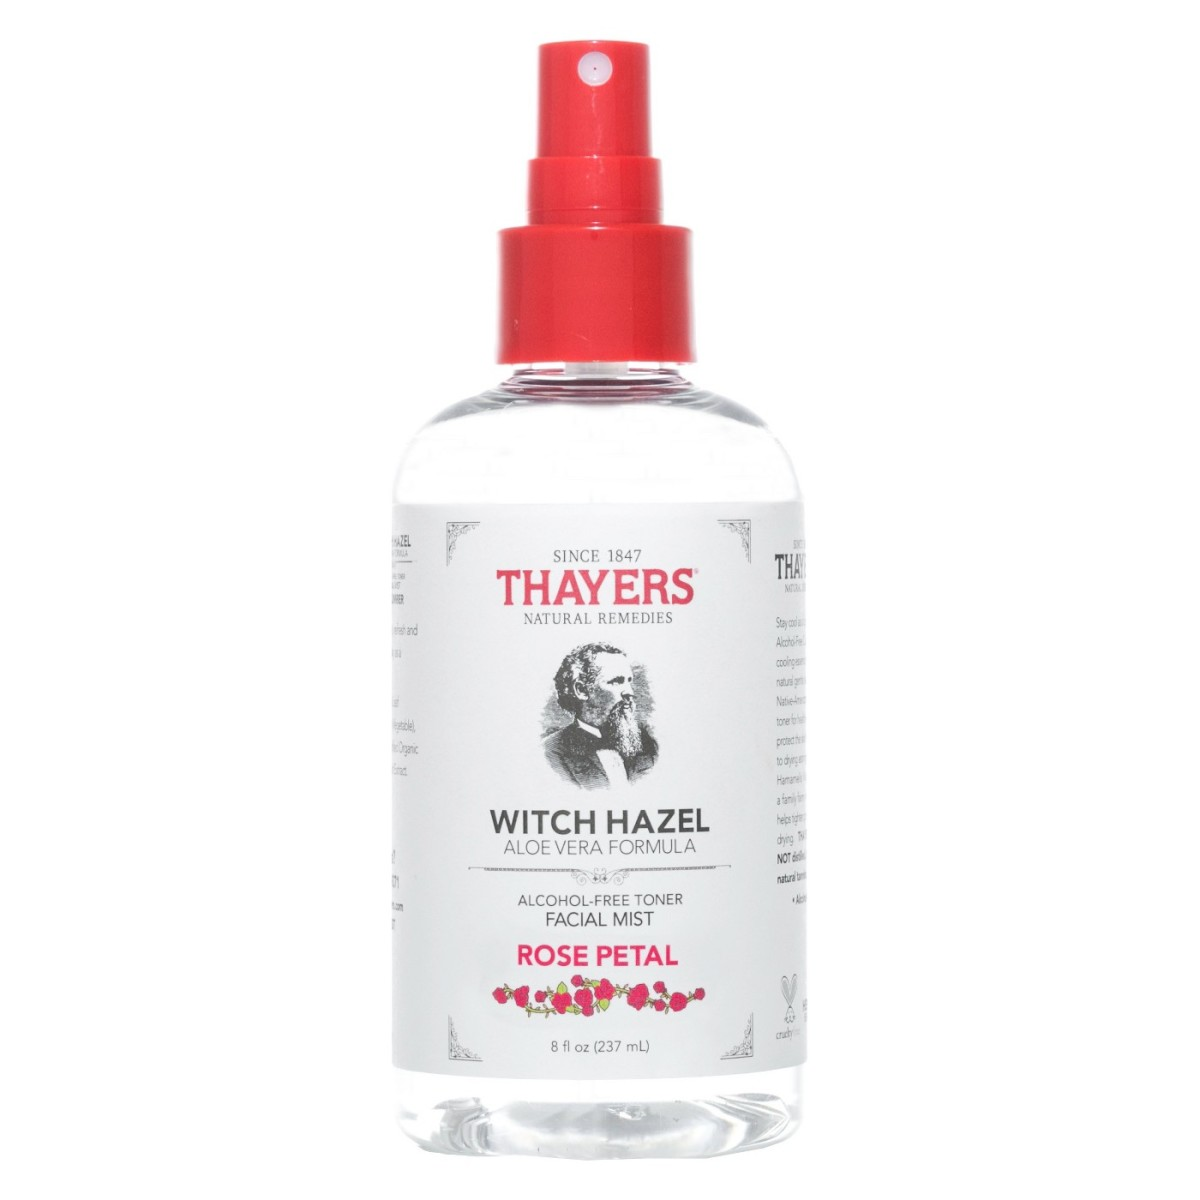 Thayers Witch Hazel Rose Petal Facial Mist, $10.95, available here.